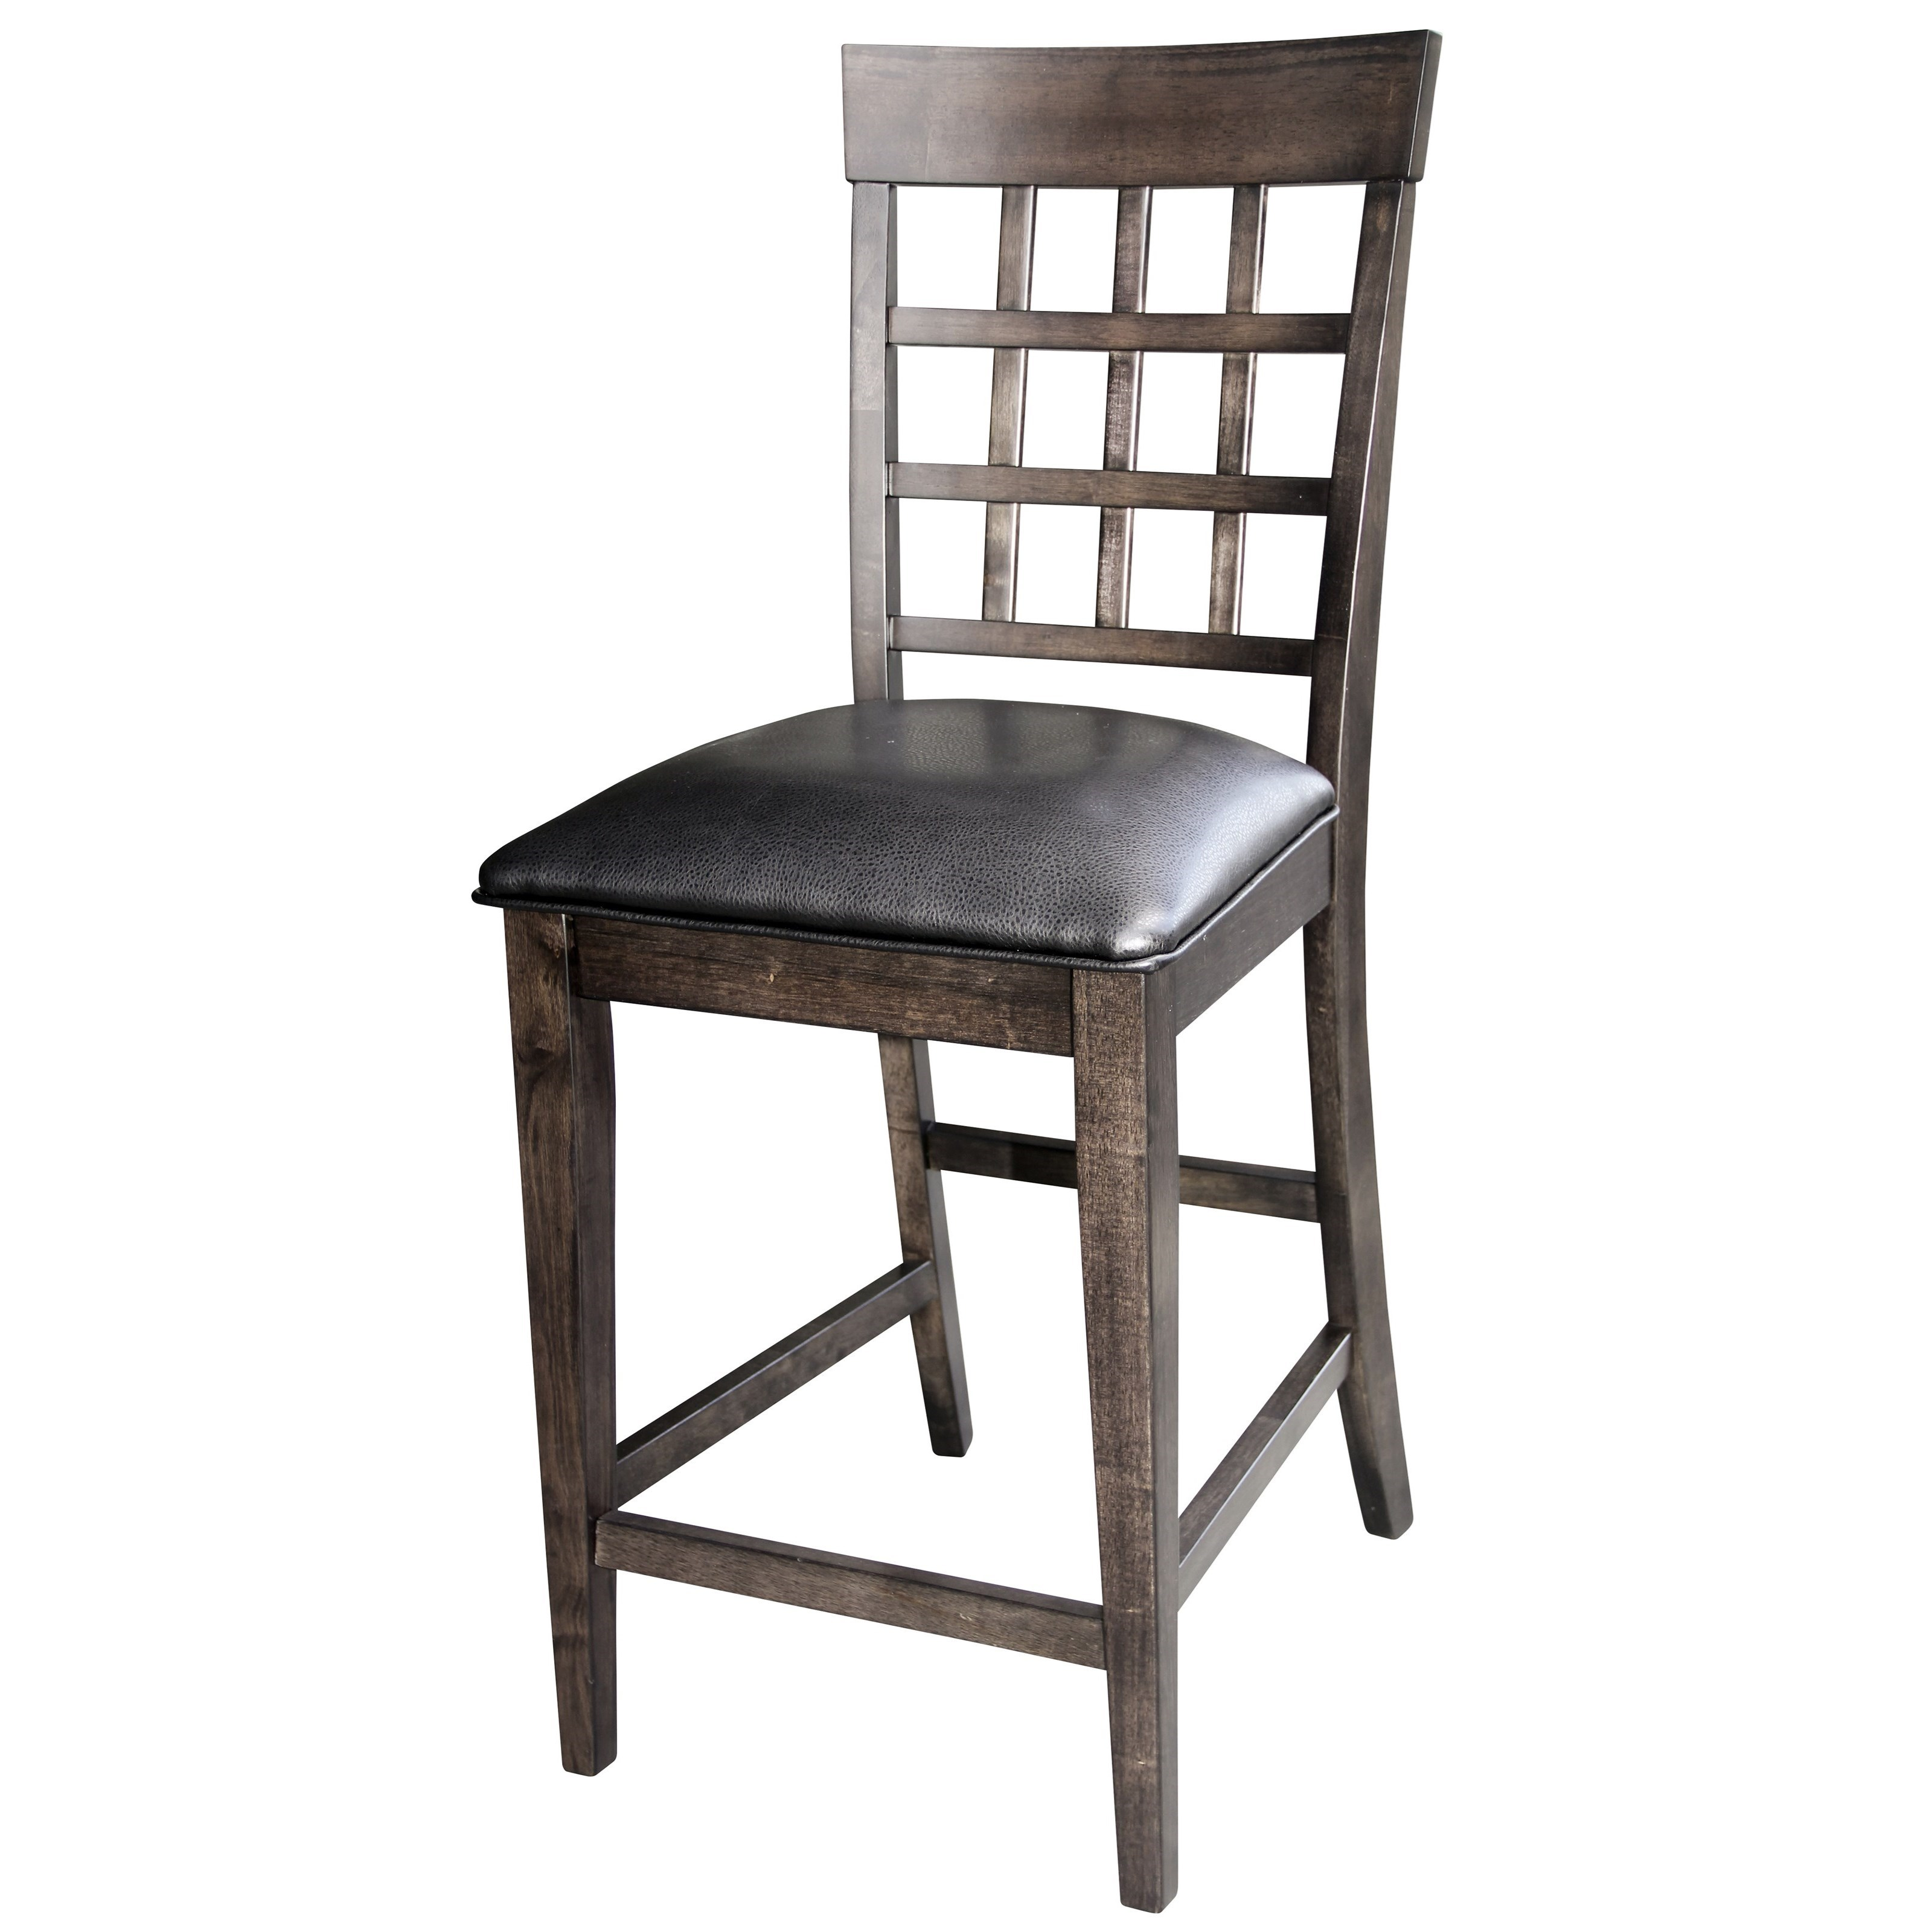 """Bristol Point - WG Gridback 24"""" Barstool  by A-A at Walker's Furniture"""